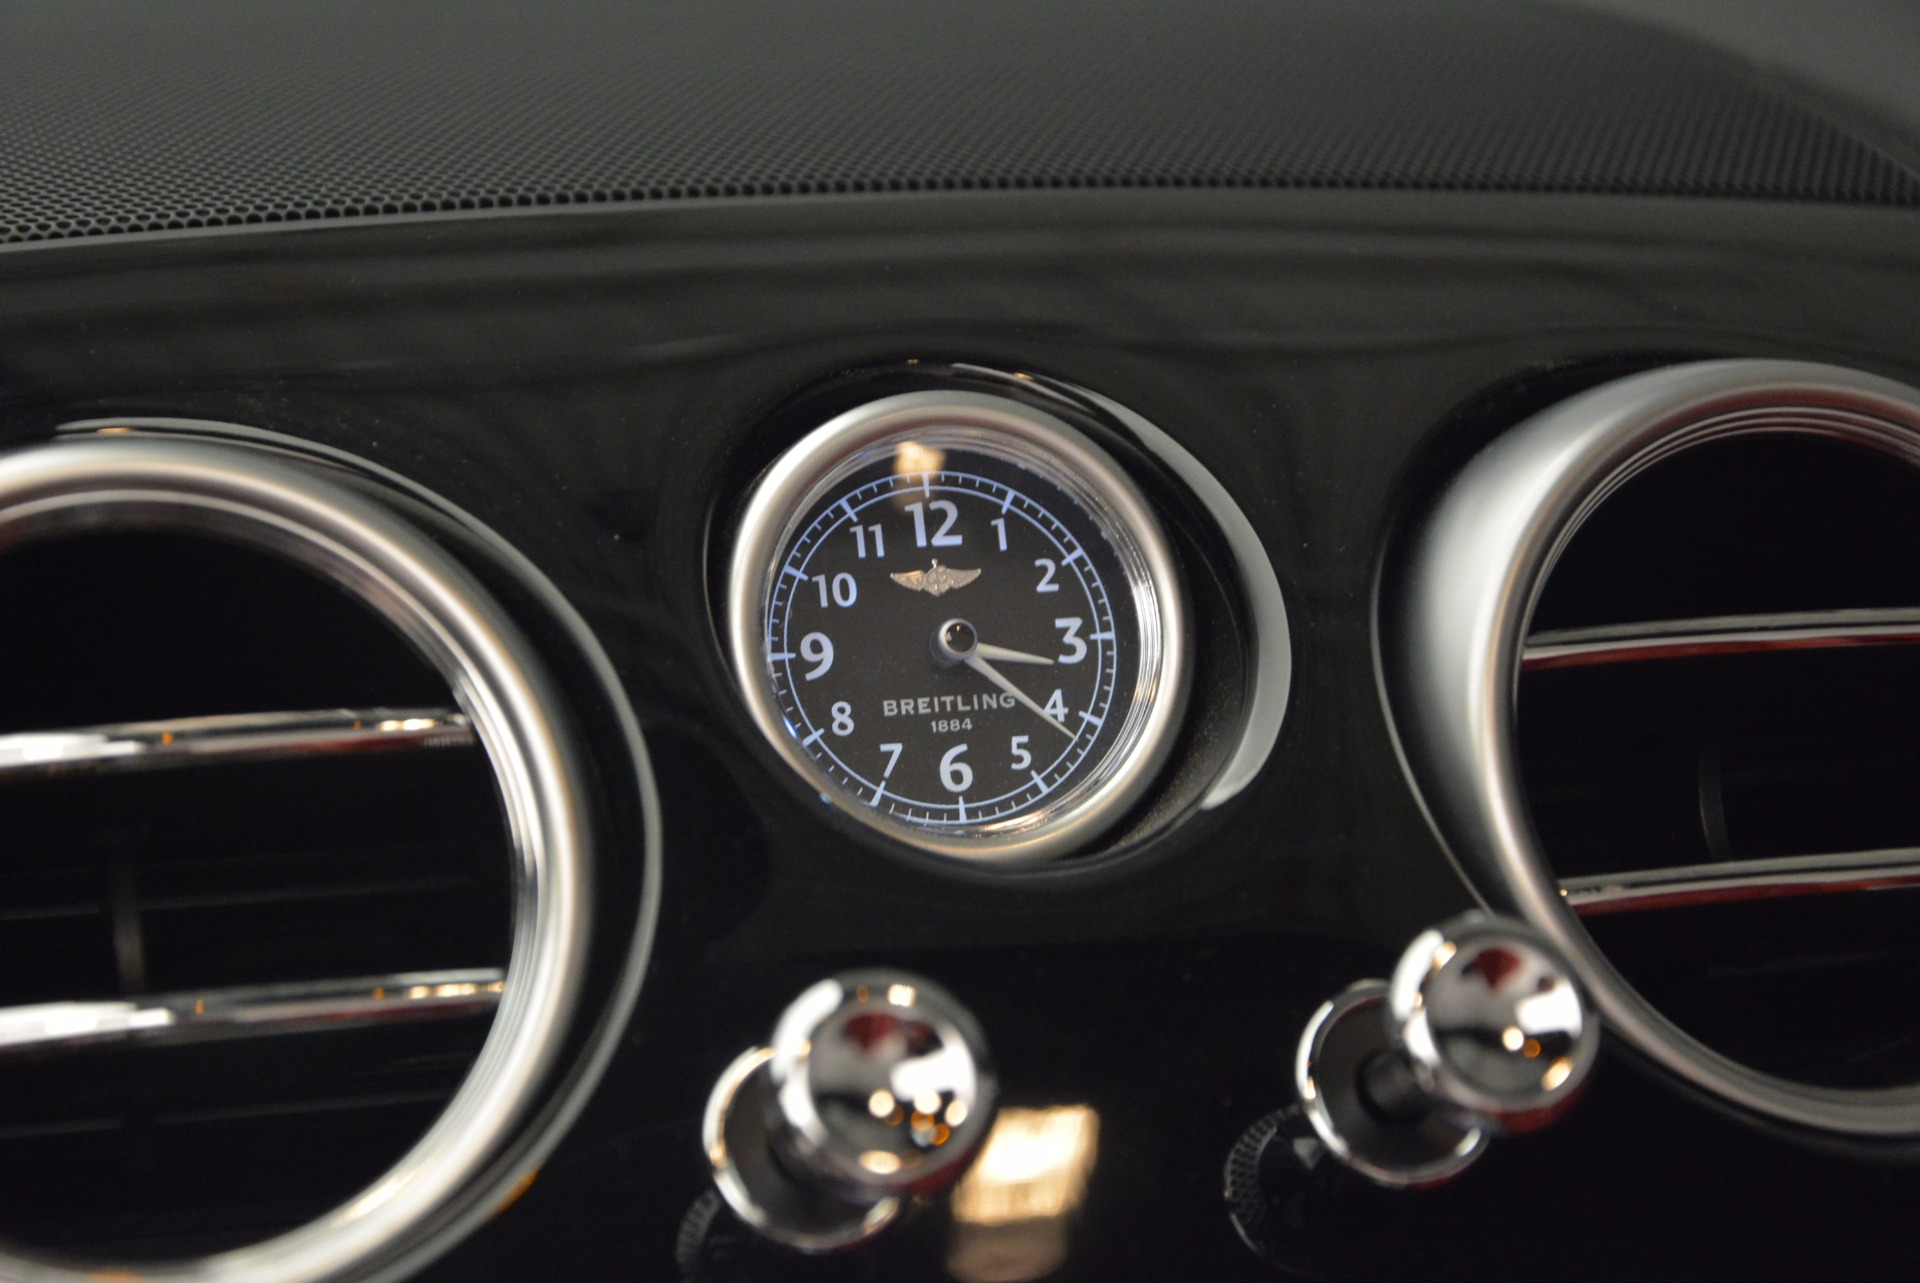 Used 2010 Bentley Continental GT Speed For Sale In Westport, CT 1298_p35